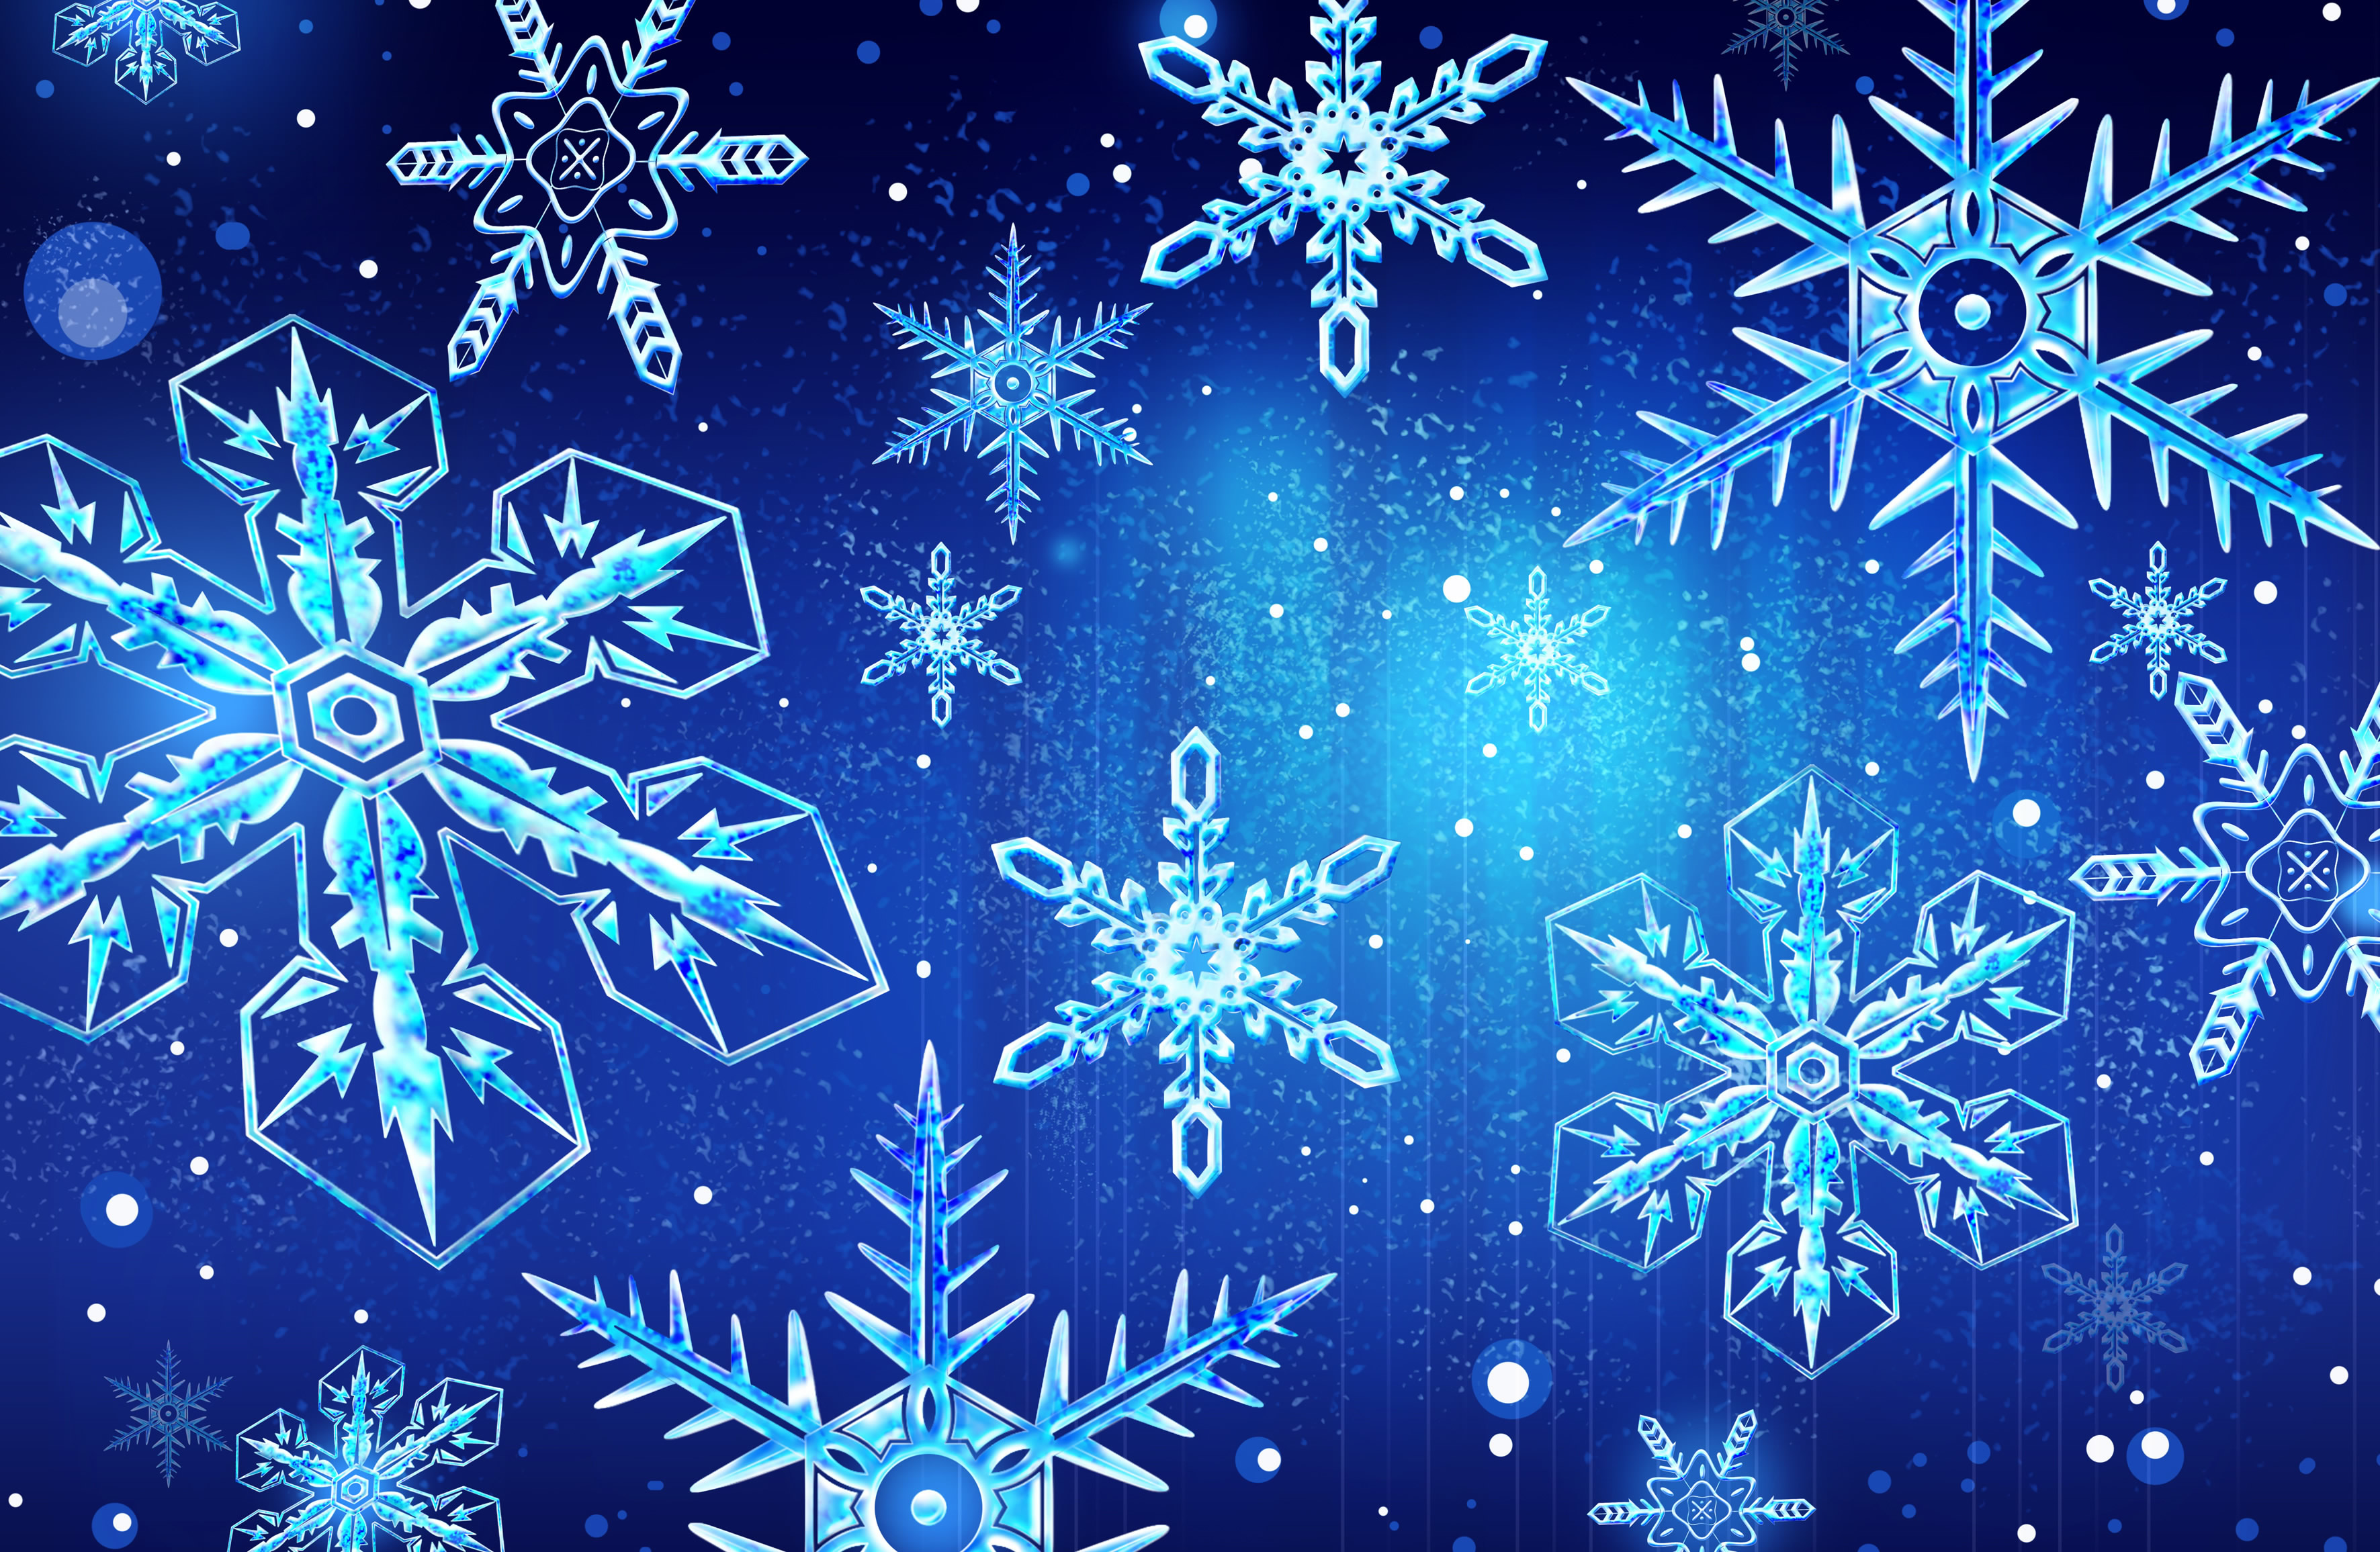 ... New Year, Christmas texture, Christmas and New Year texture background